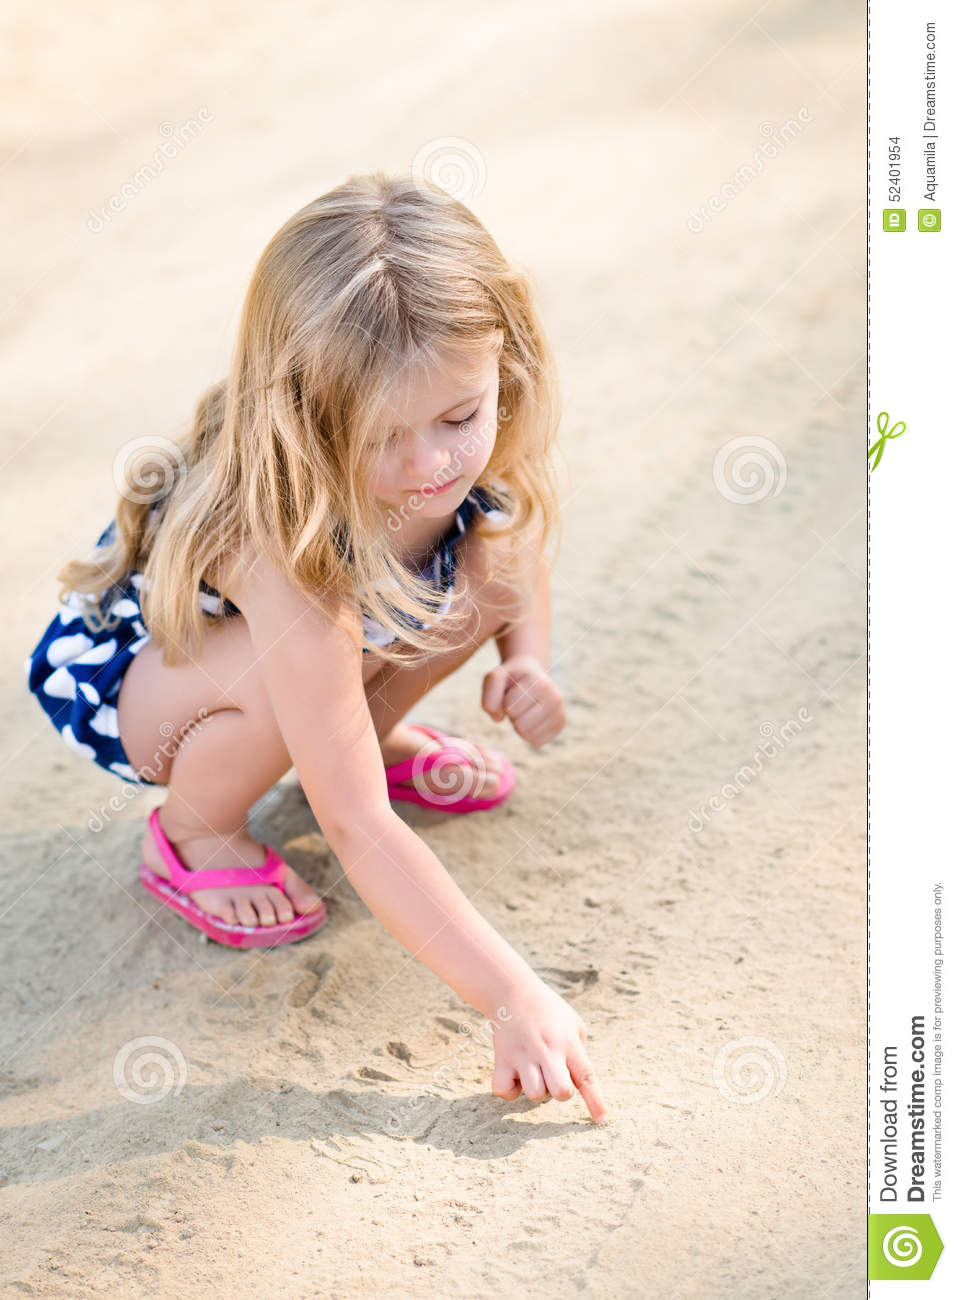 Cute Thoughtful Little Girl With Long Blond Hair Squatting